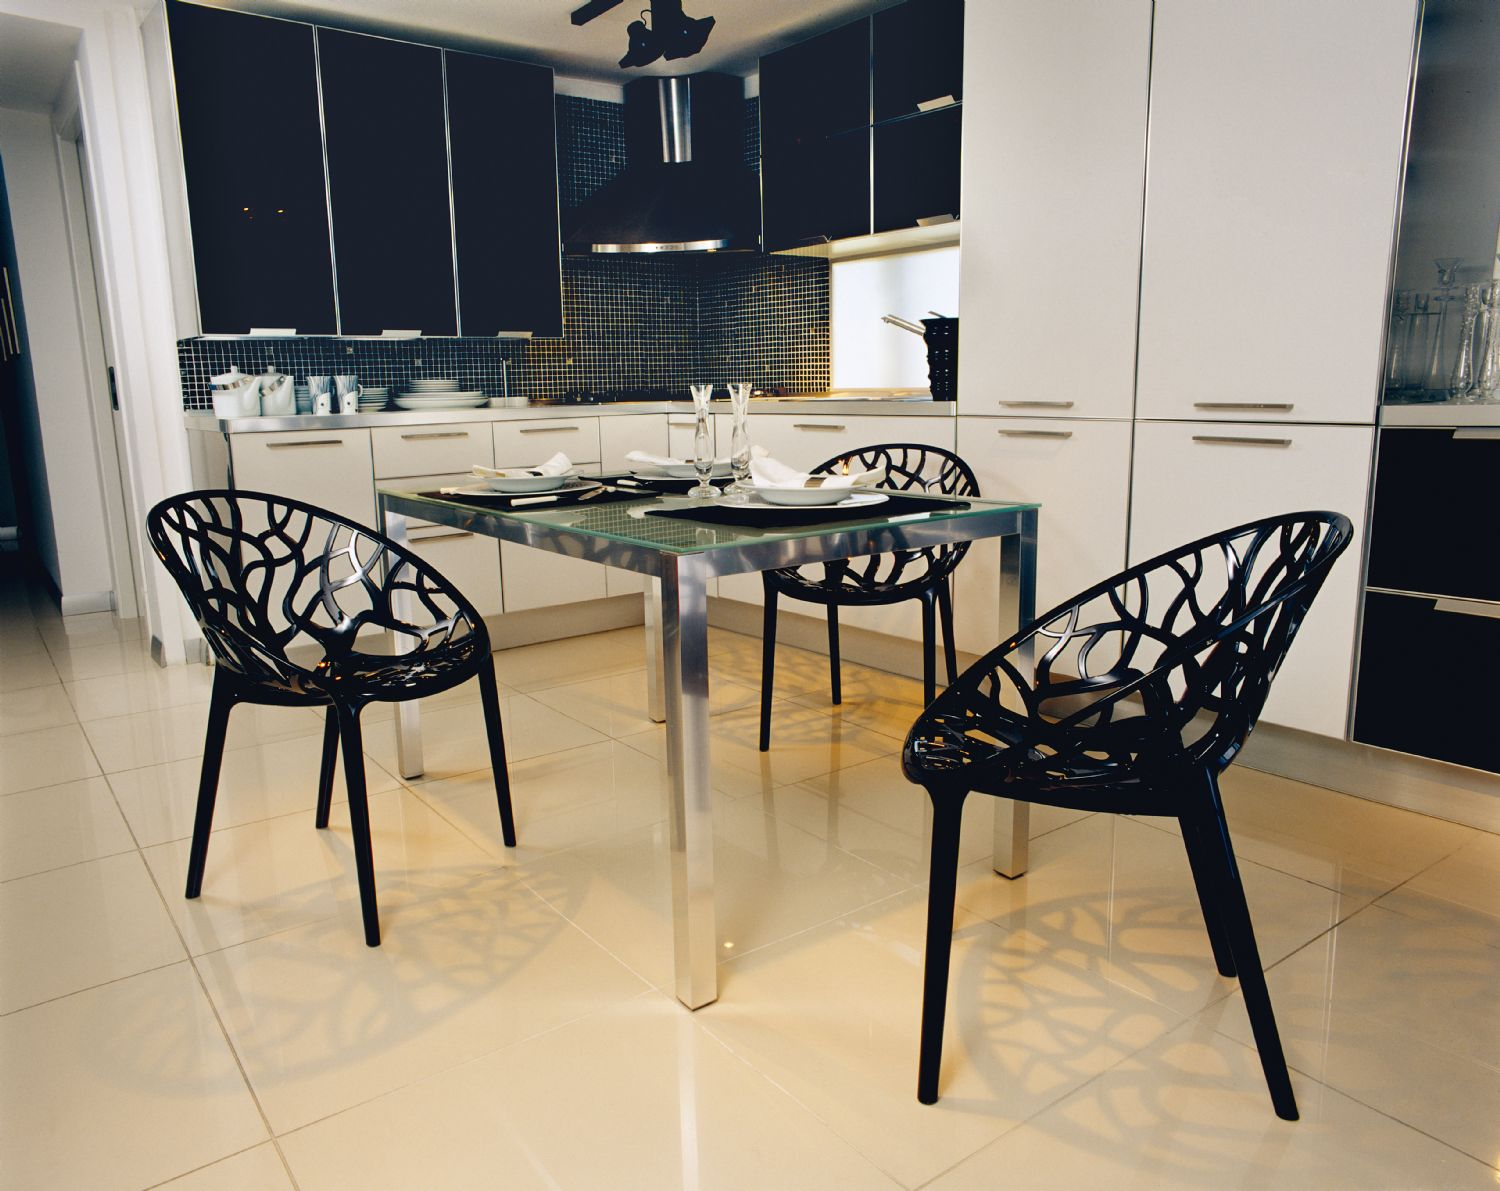 Crystal Polycarbonate Modern Dining Chair Transparent ISP052-TCL - 8